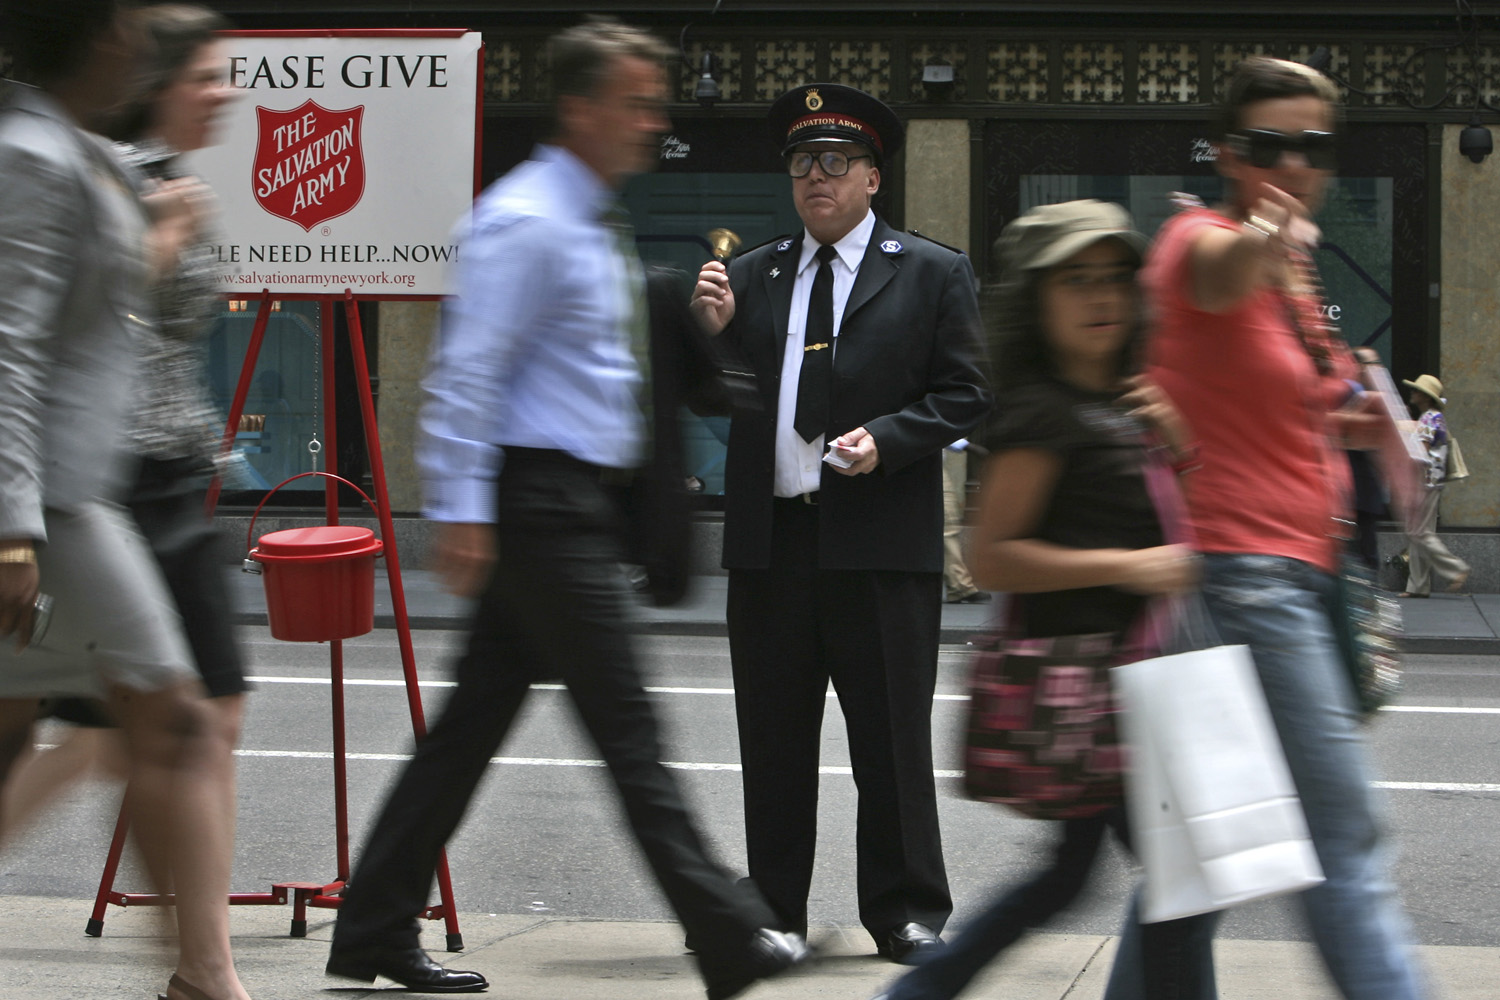 Salvation Army Soldier Daniel Aherns collects donations on 5th Ave. at Rockefeller Center, Monday, July 13, 2009 in New York.